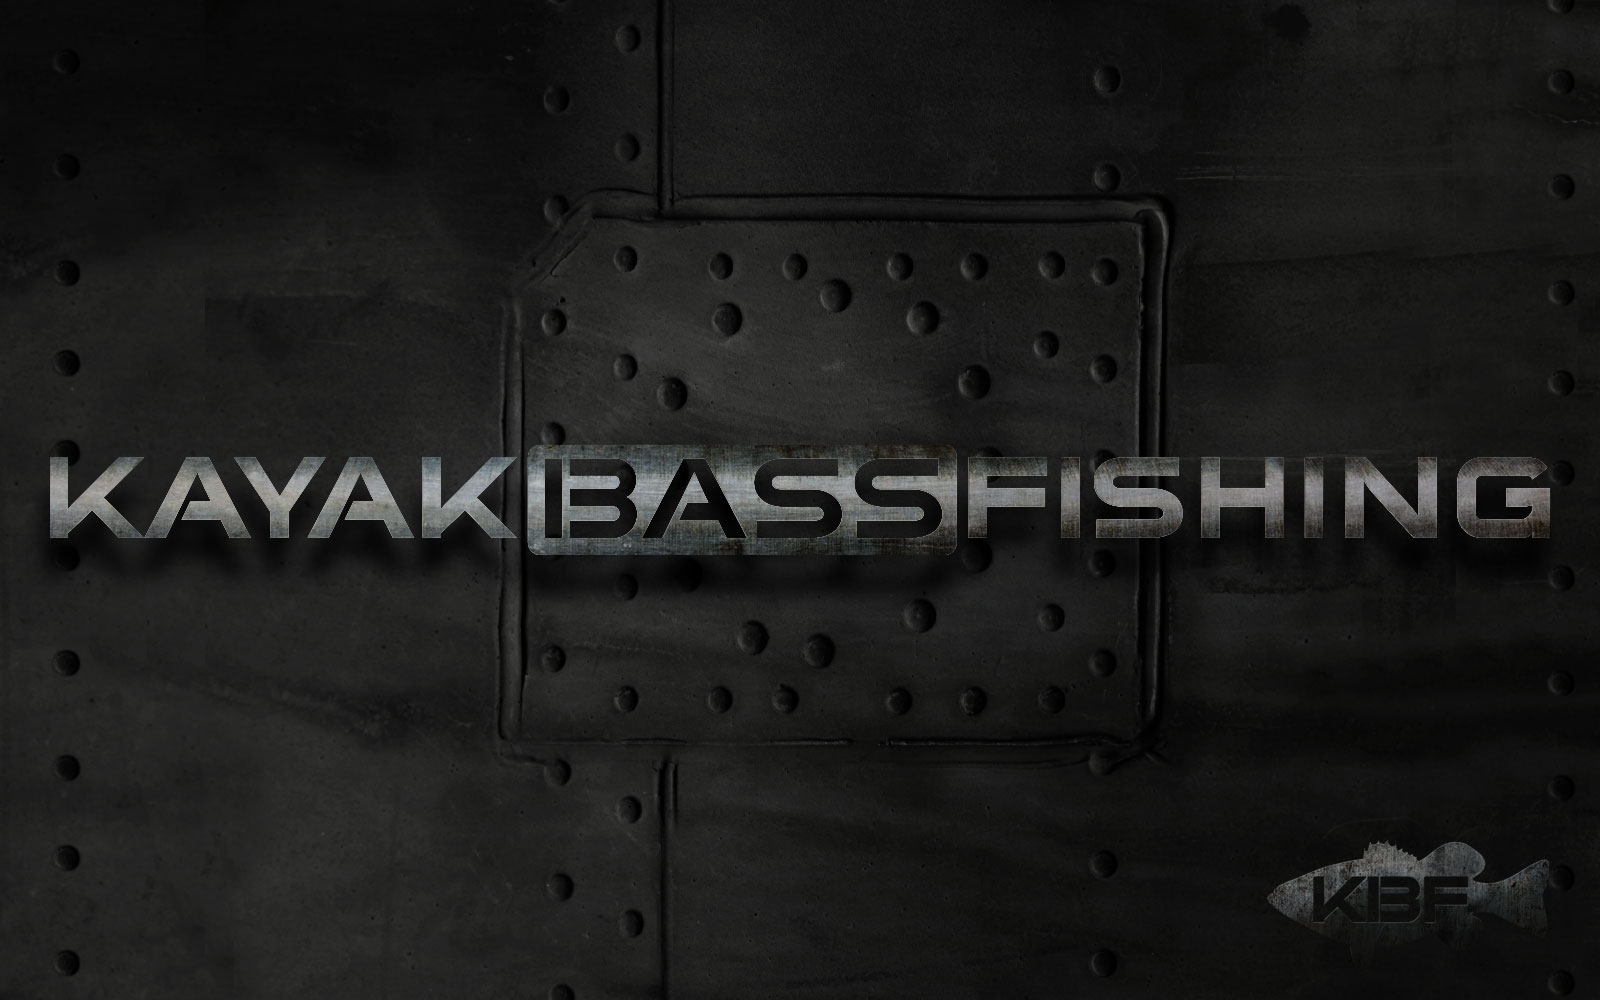 KAYAKBASSFISHING Background